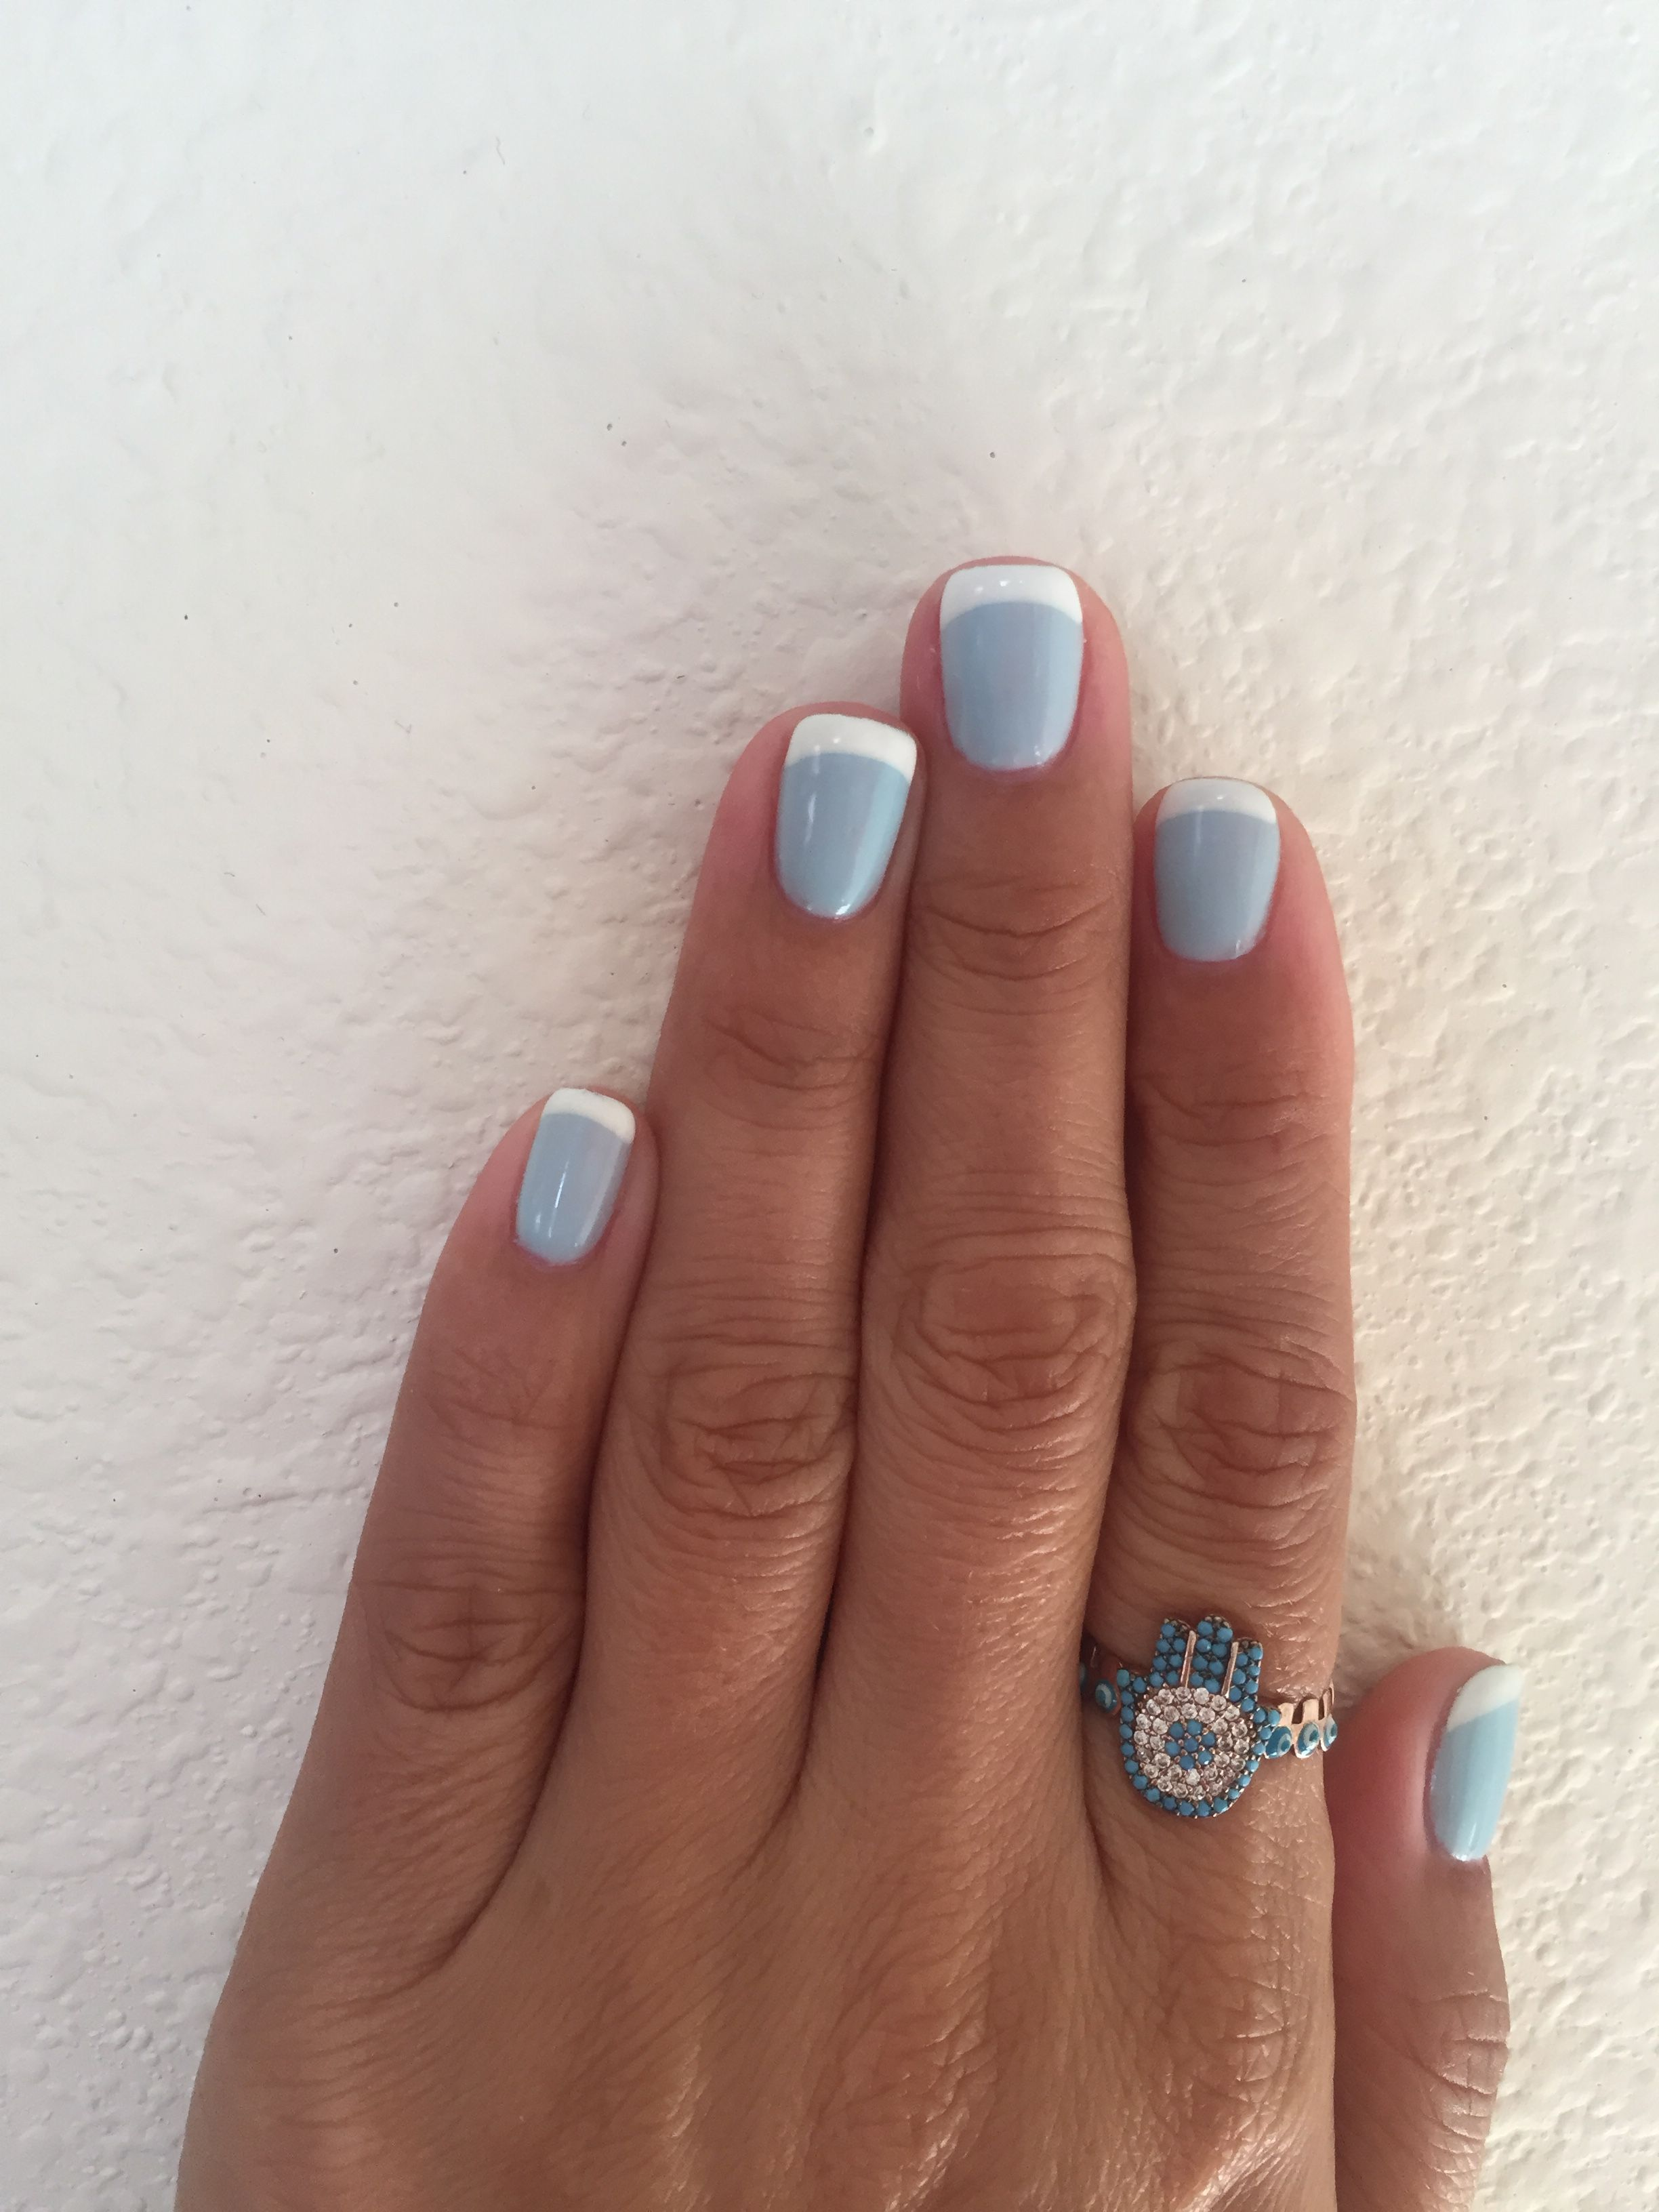 OPI Tiffany Blue french gel nails | Manicures | Pinterest | Tiffany ...